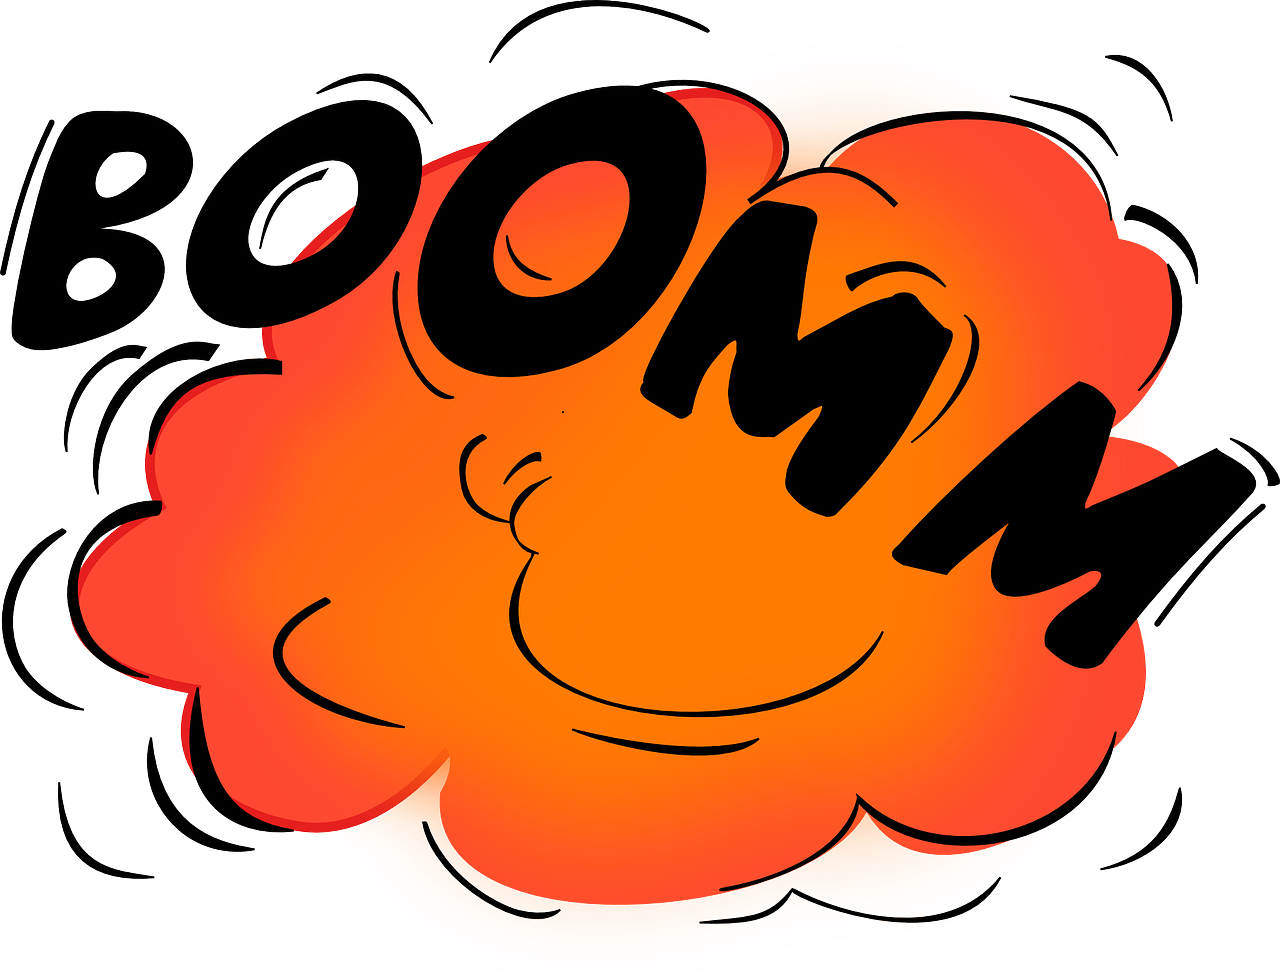 Onomatopoeia – Writing Toward Home